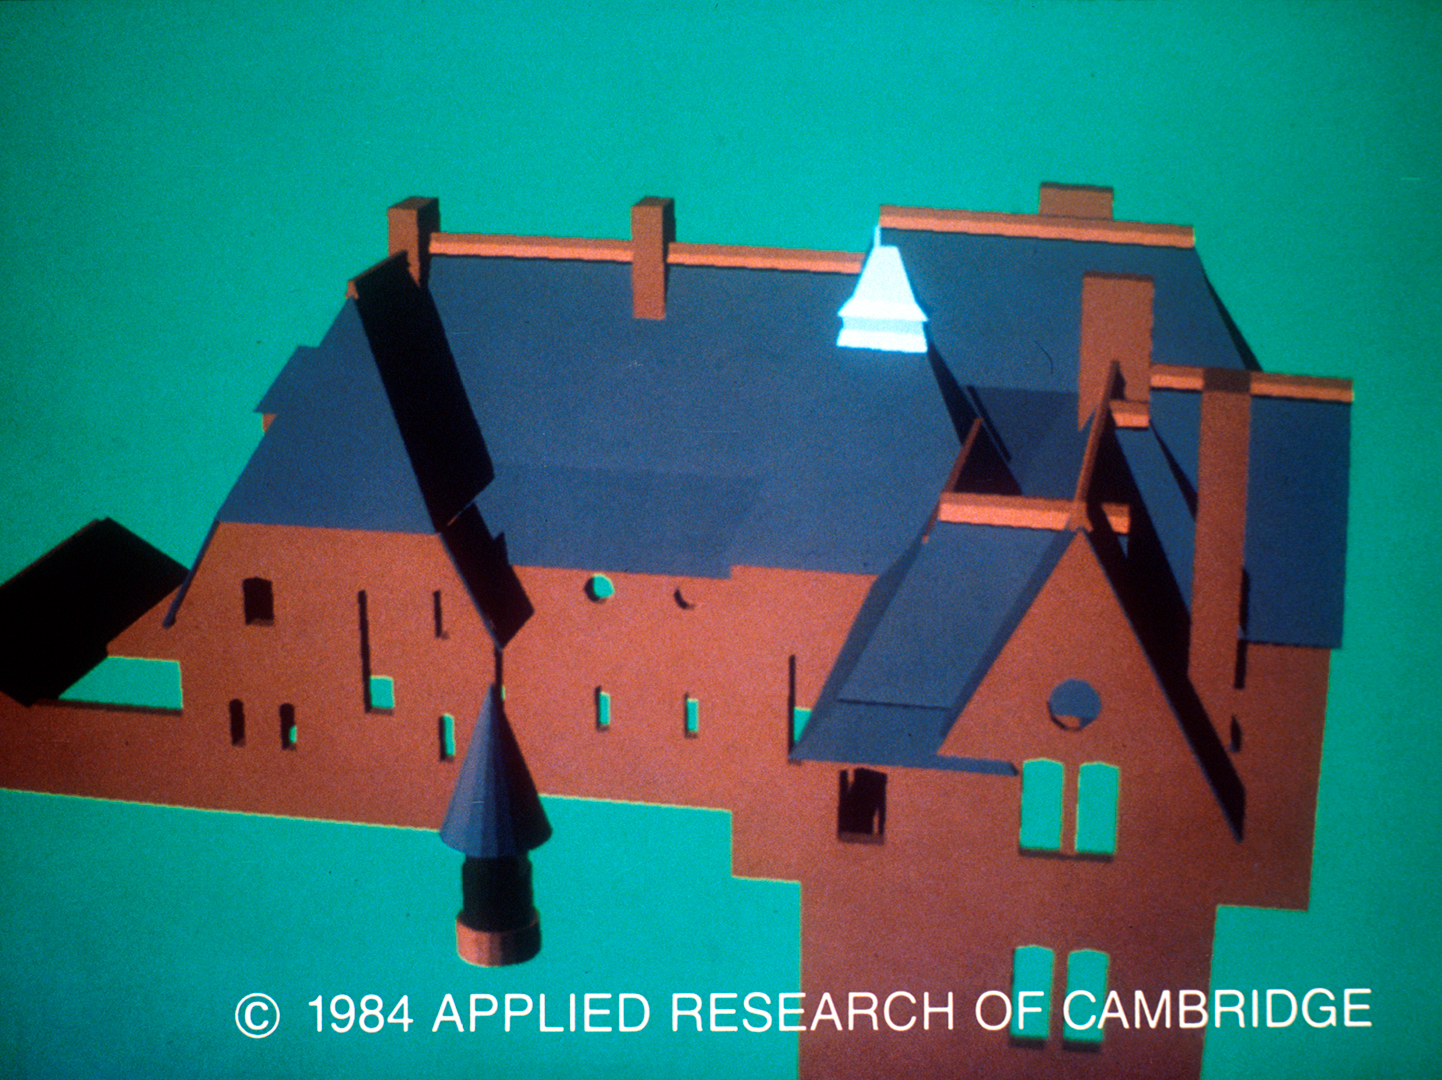 ©, Applied Research of Cambridge